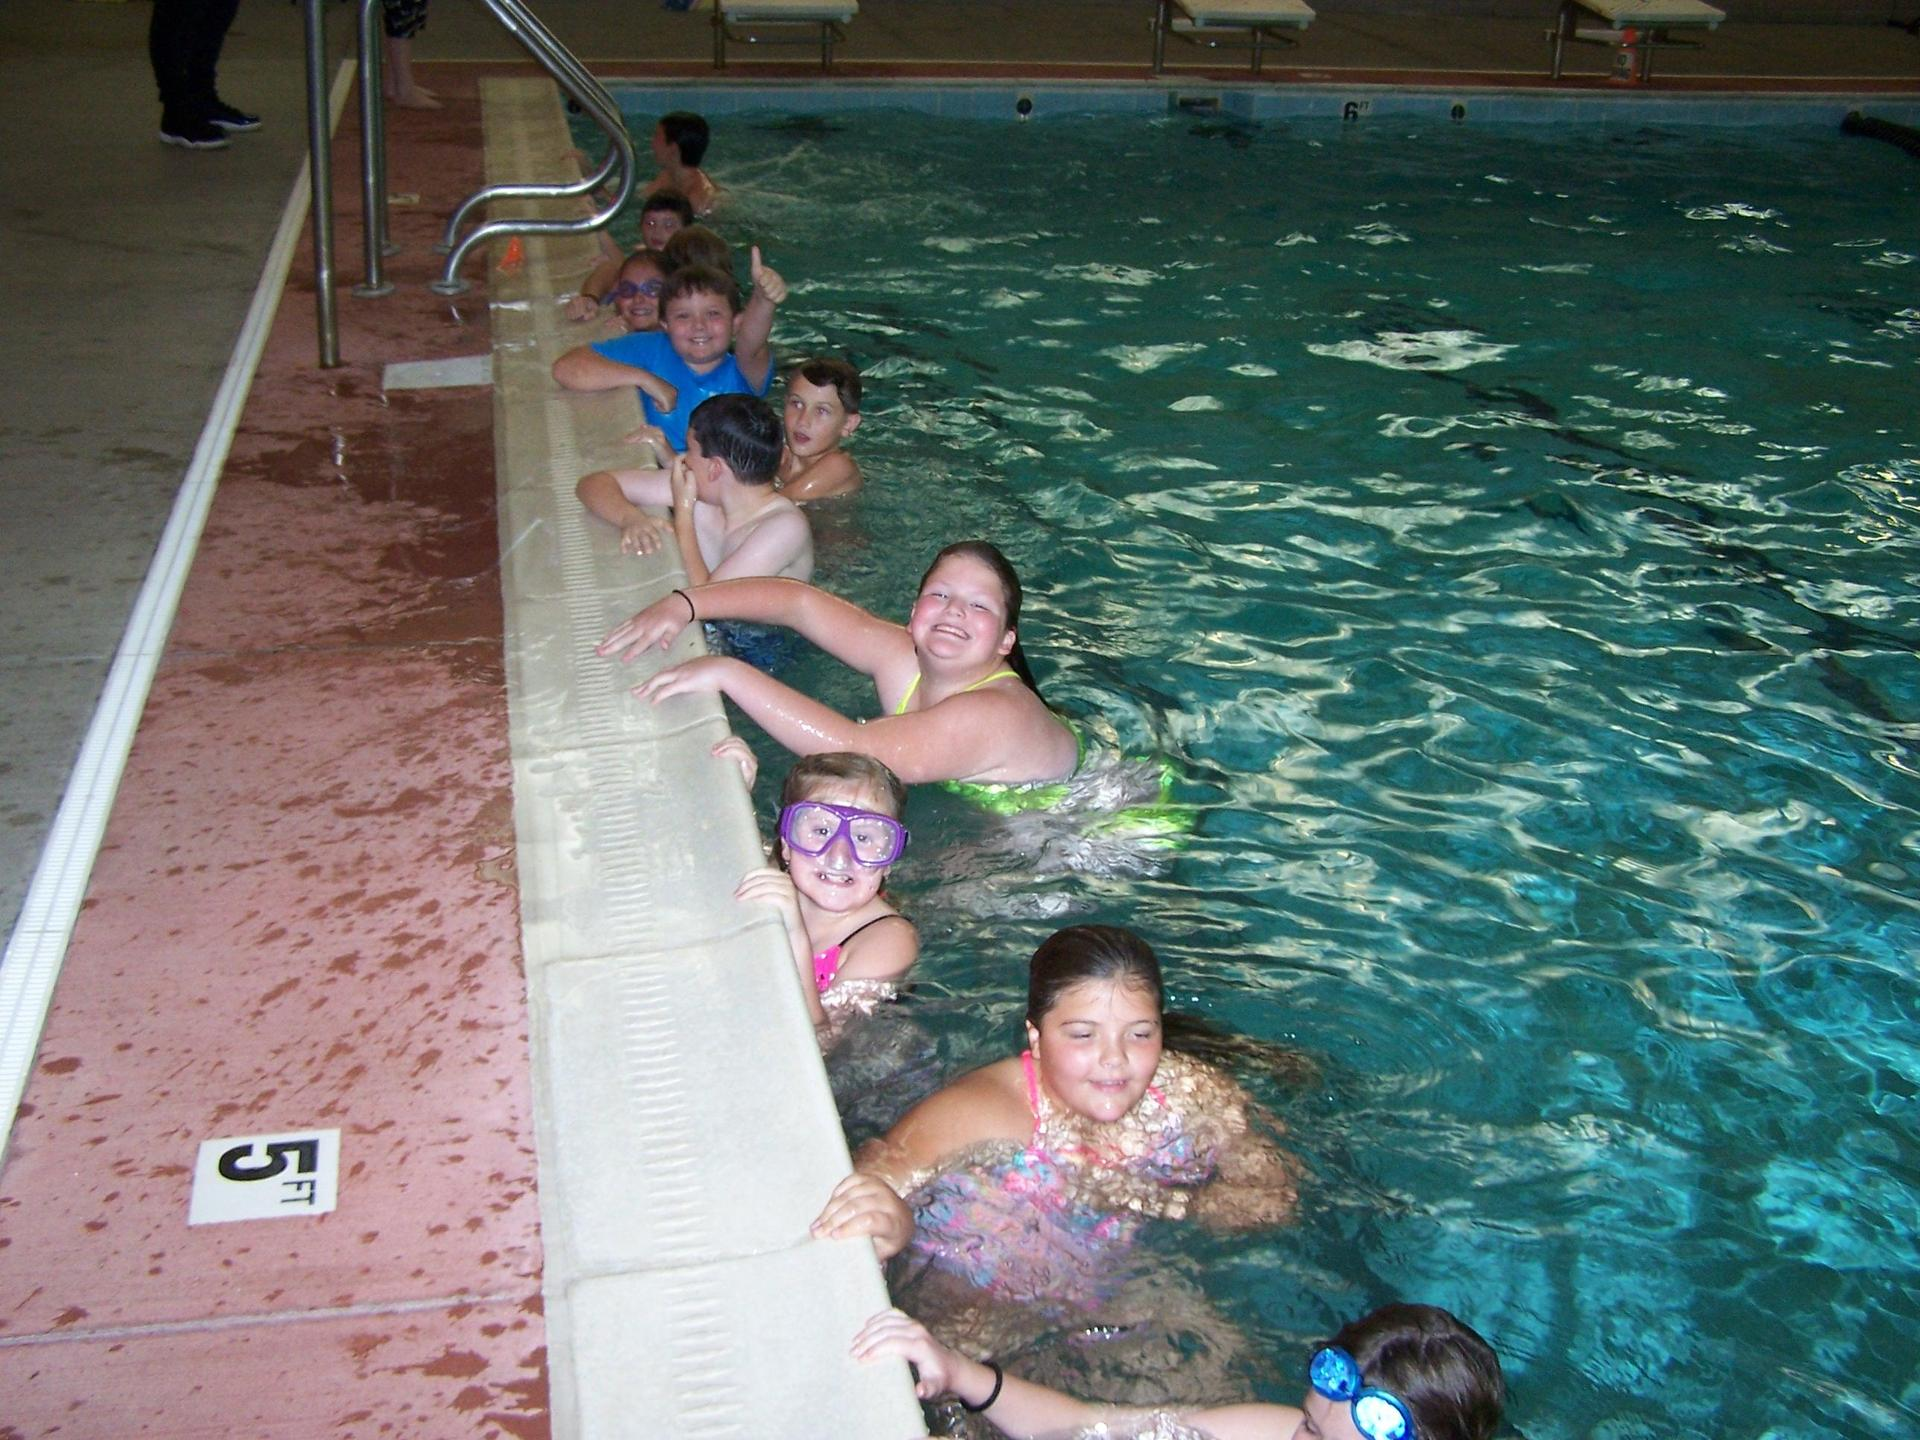 Students enjoy water safety course at the Lifetime Wellness Center in Marion